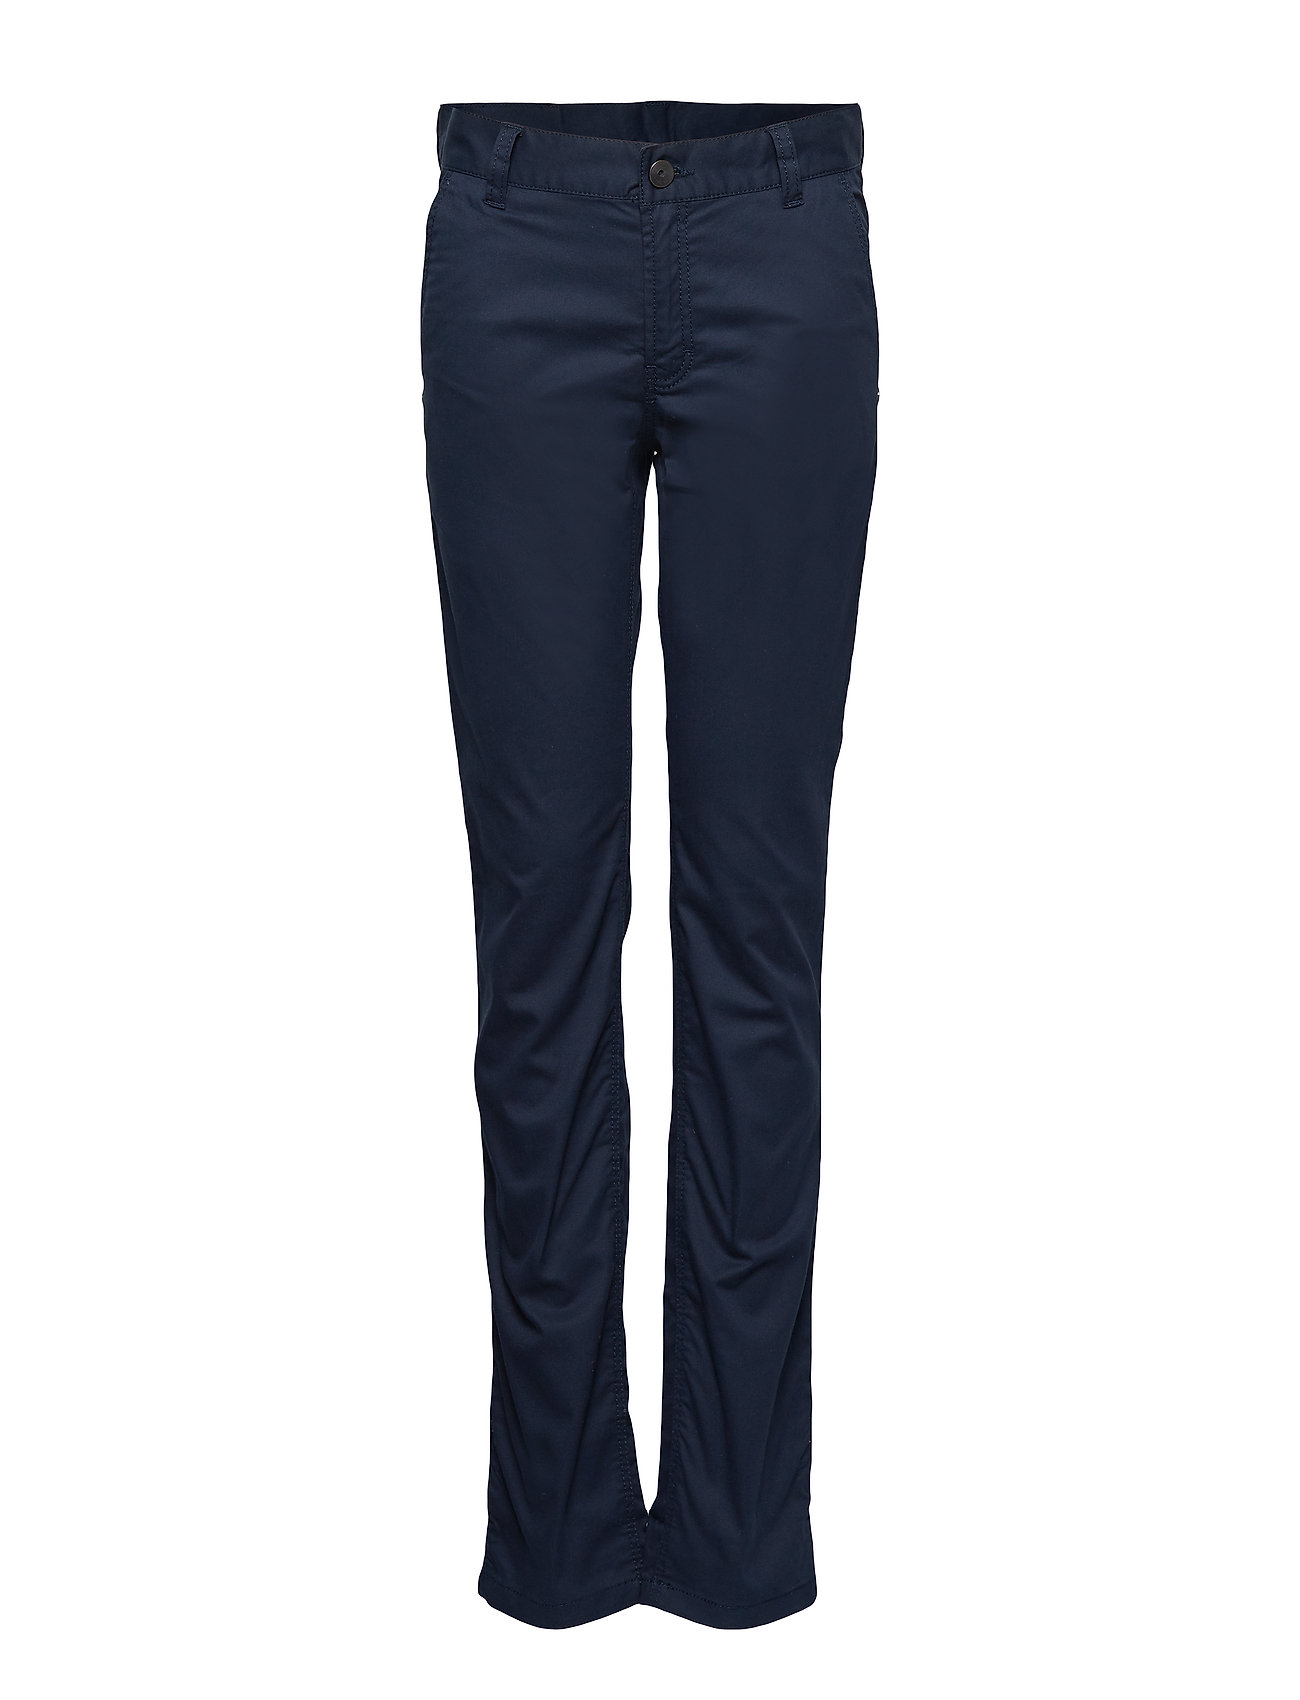 BOSS TROUSERS - NAVY